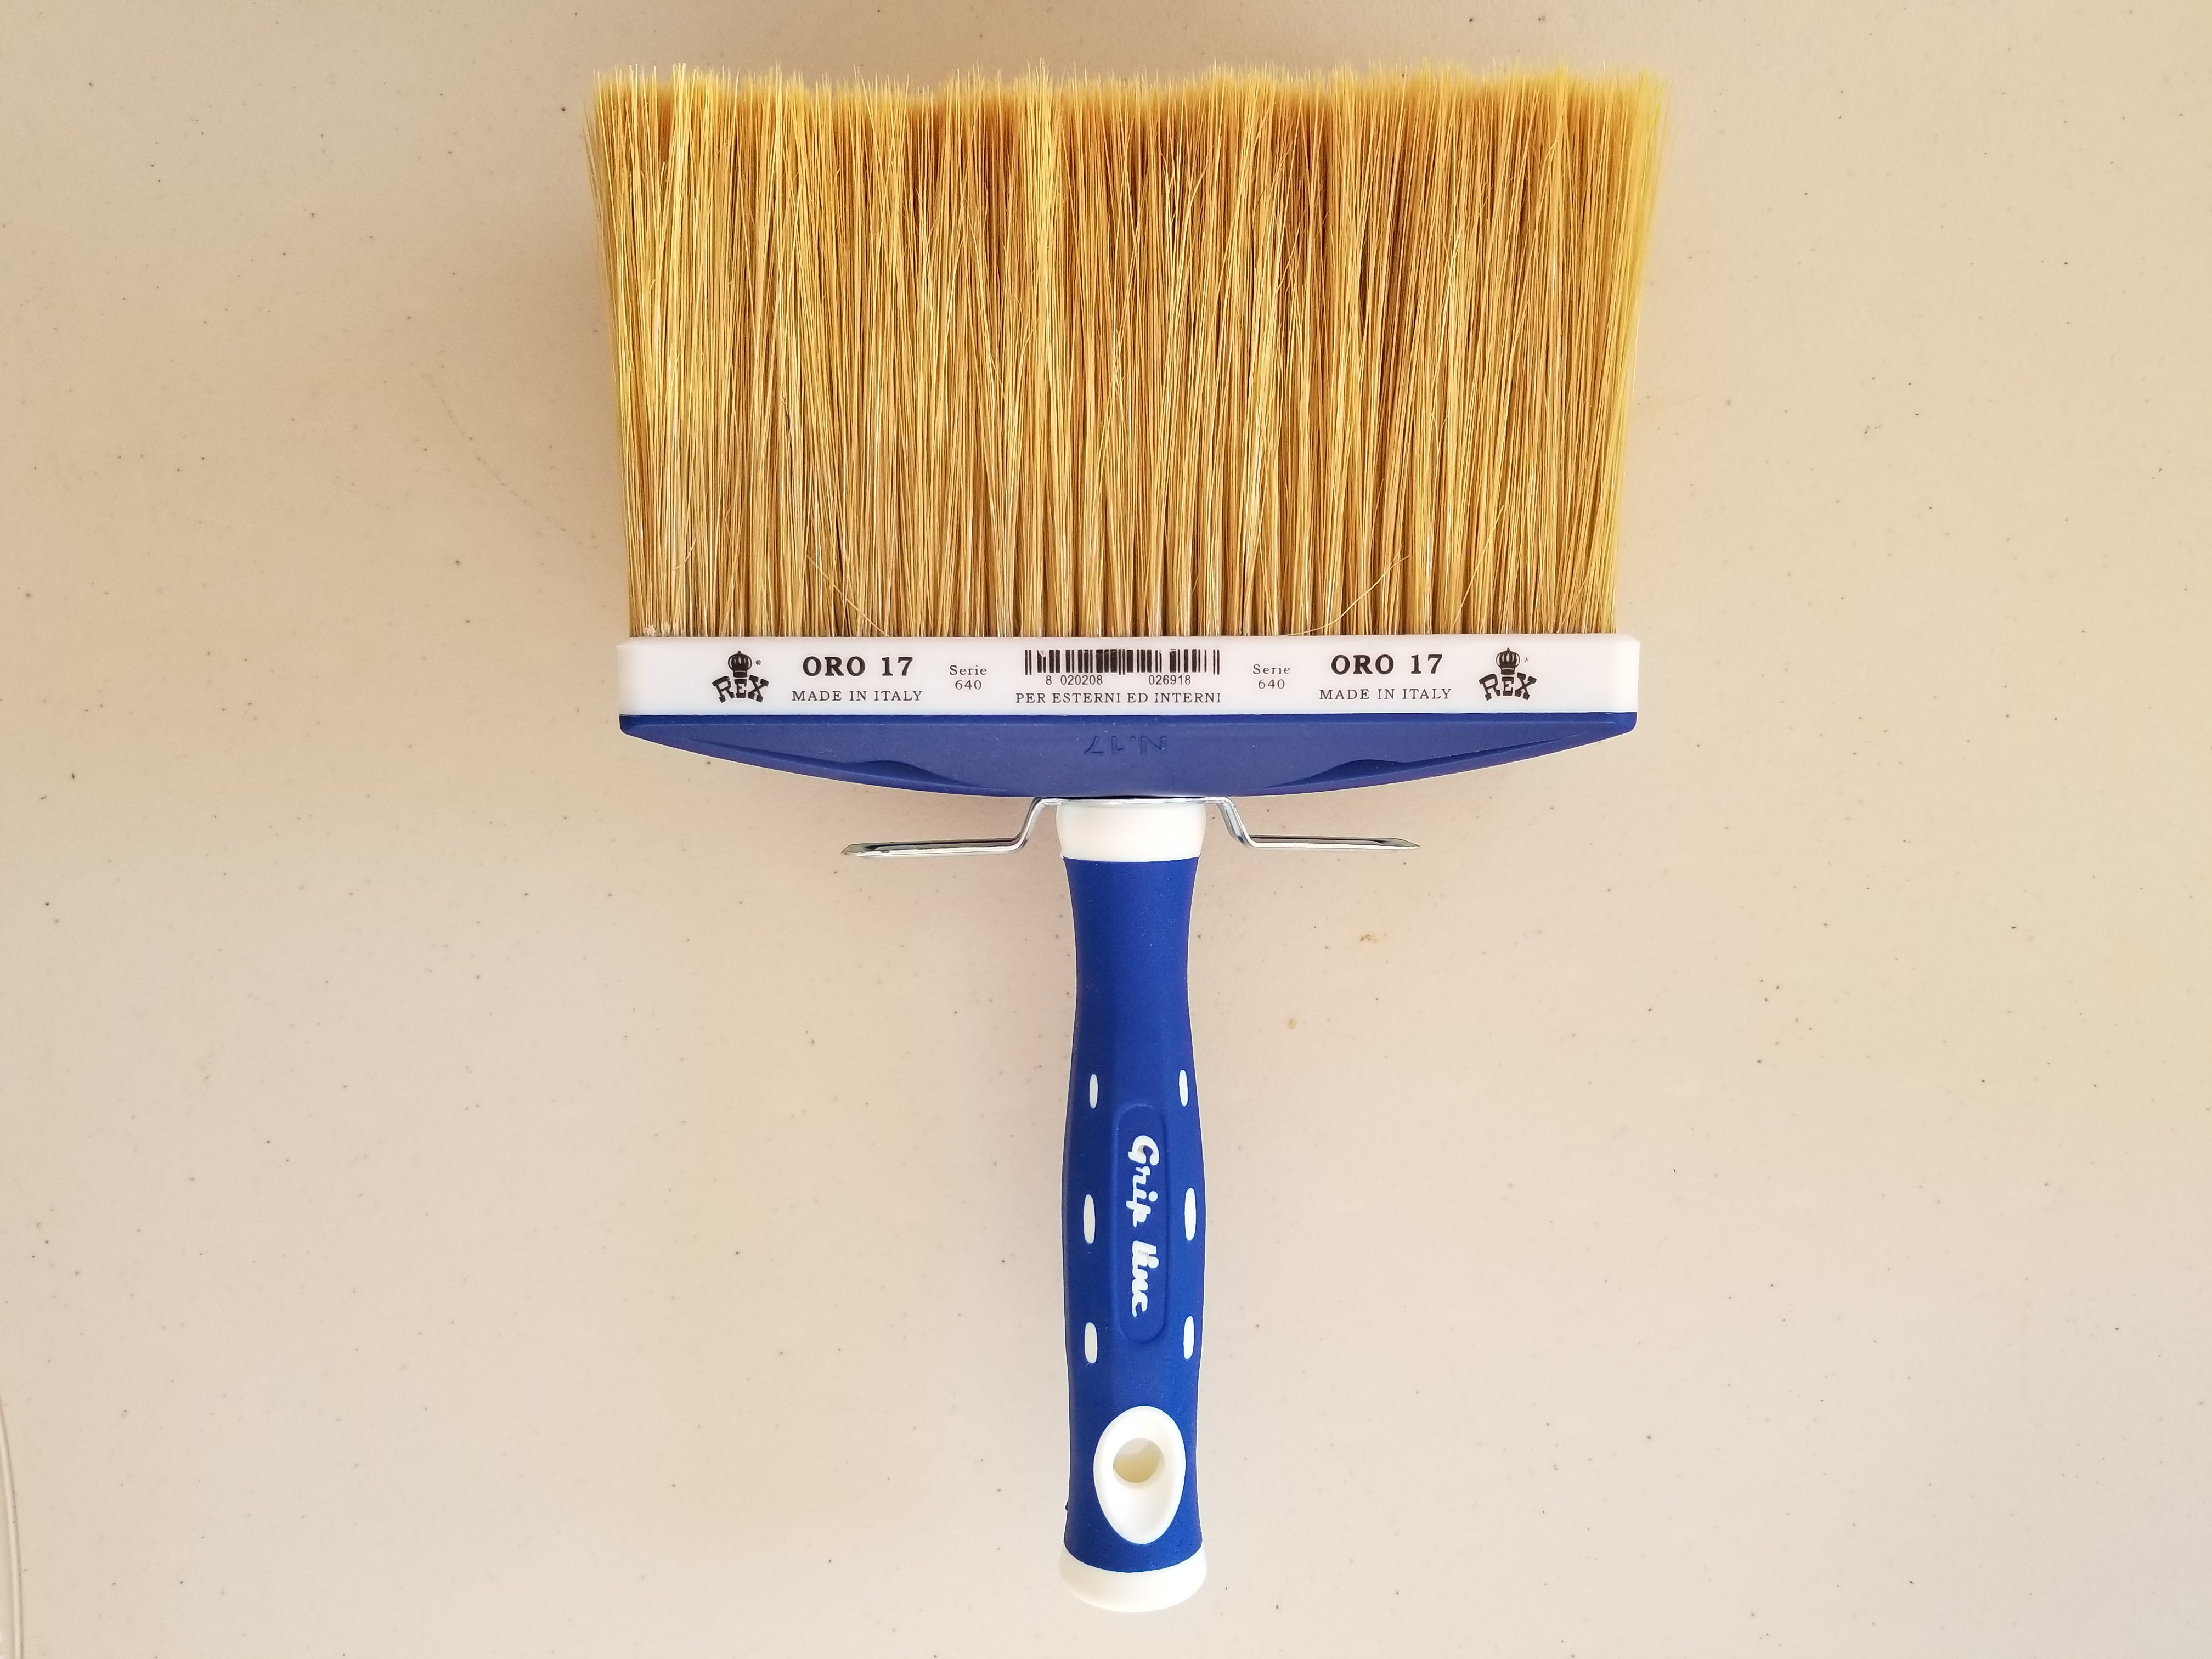 "Rex Pennelli - ORO Lime Paint Brush - 6.5"" - Atlas Preservation"